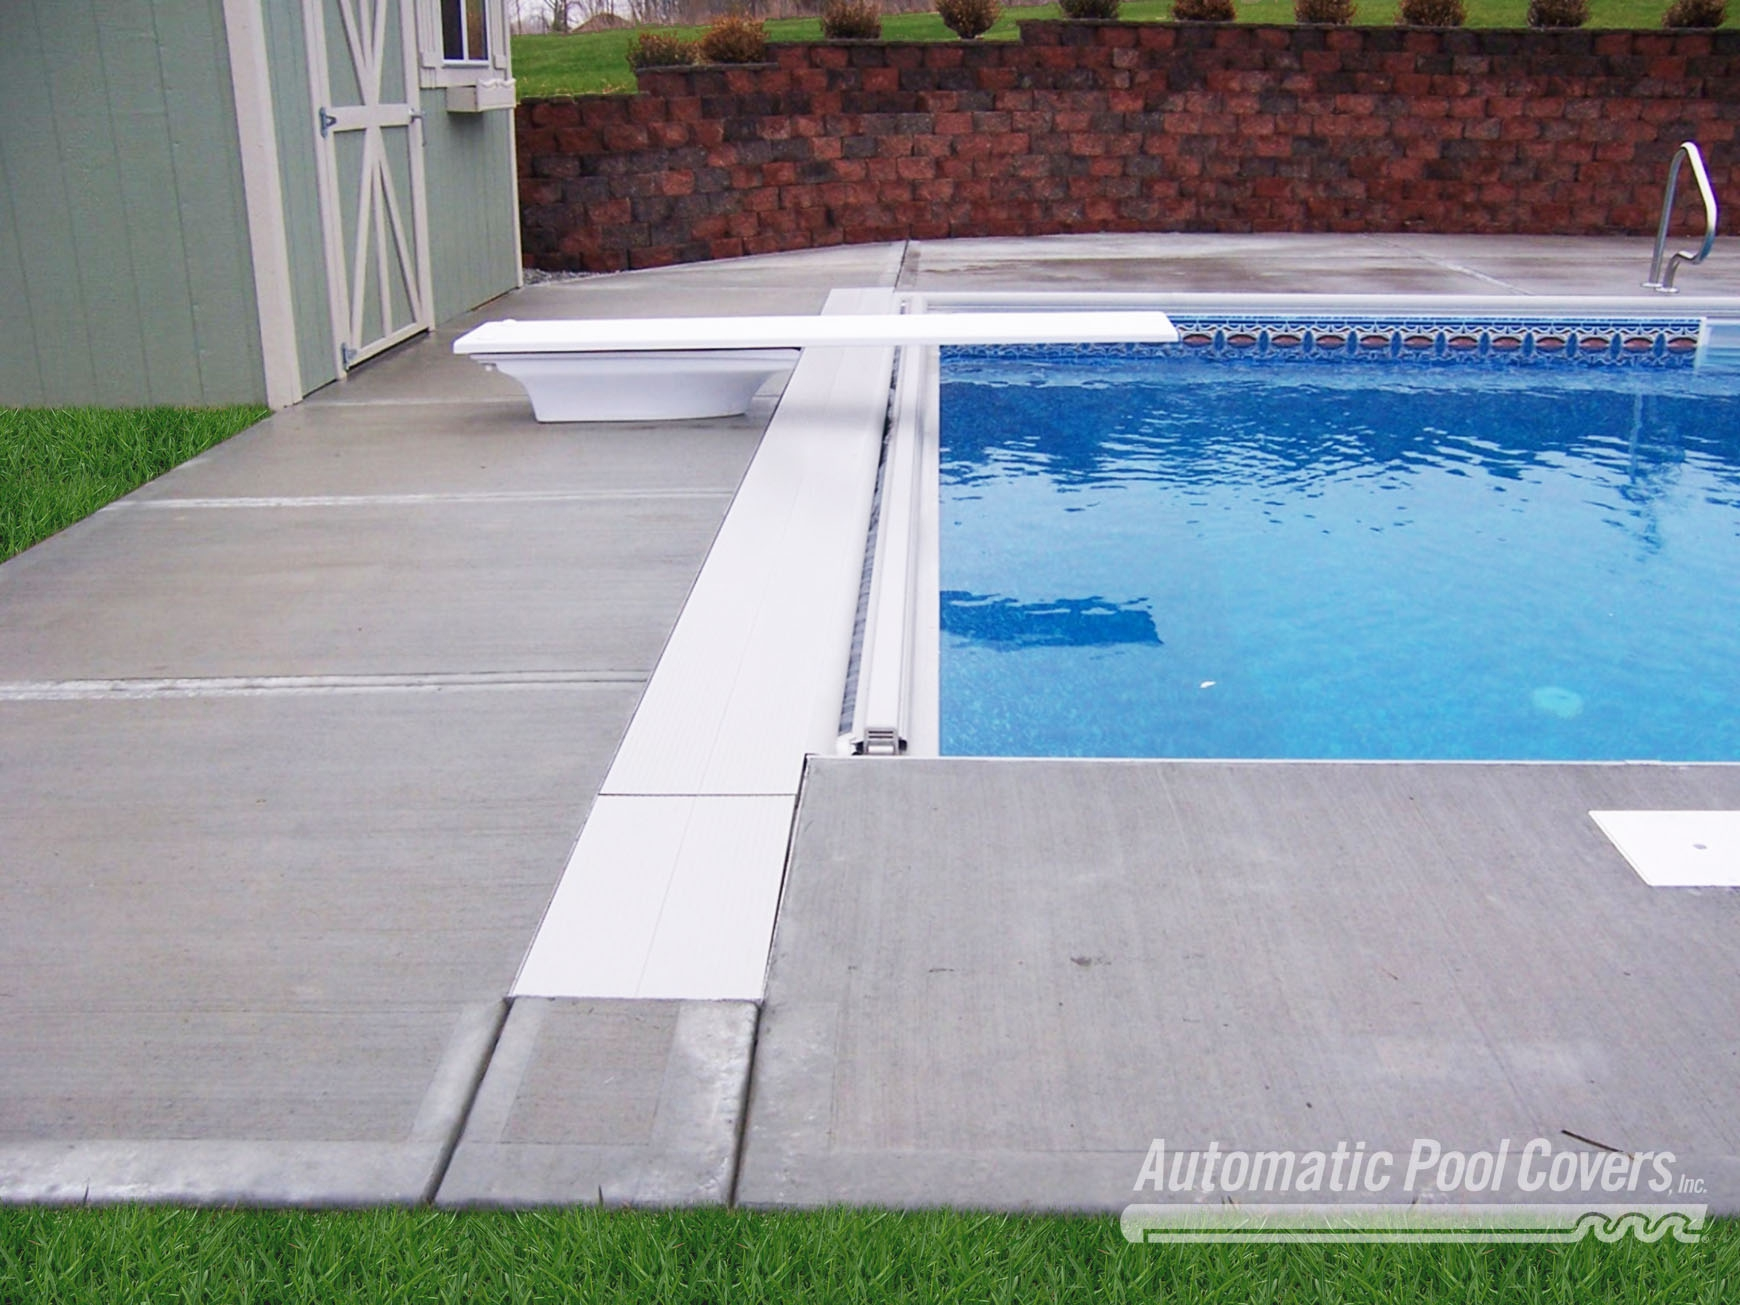 Three Sixty Five System Automatic Pool Covers